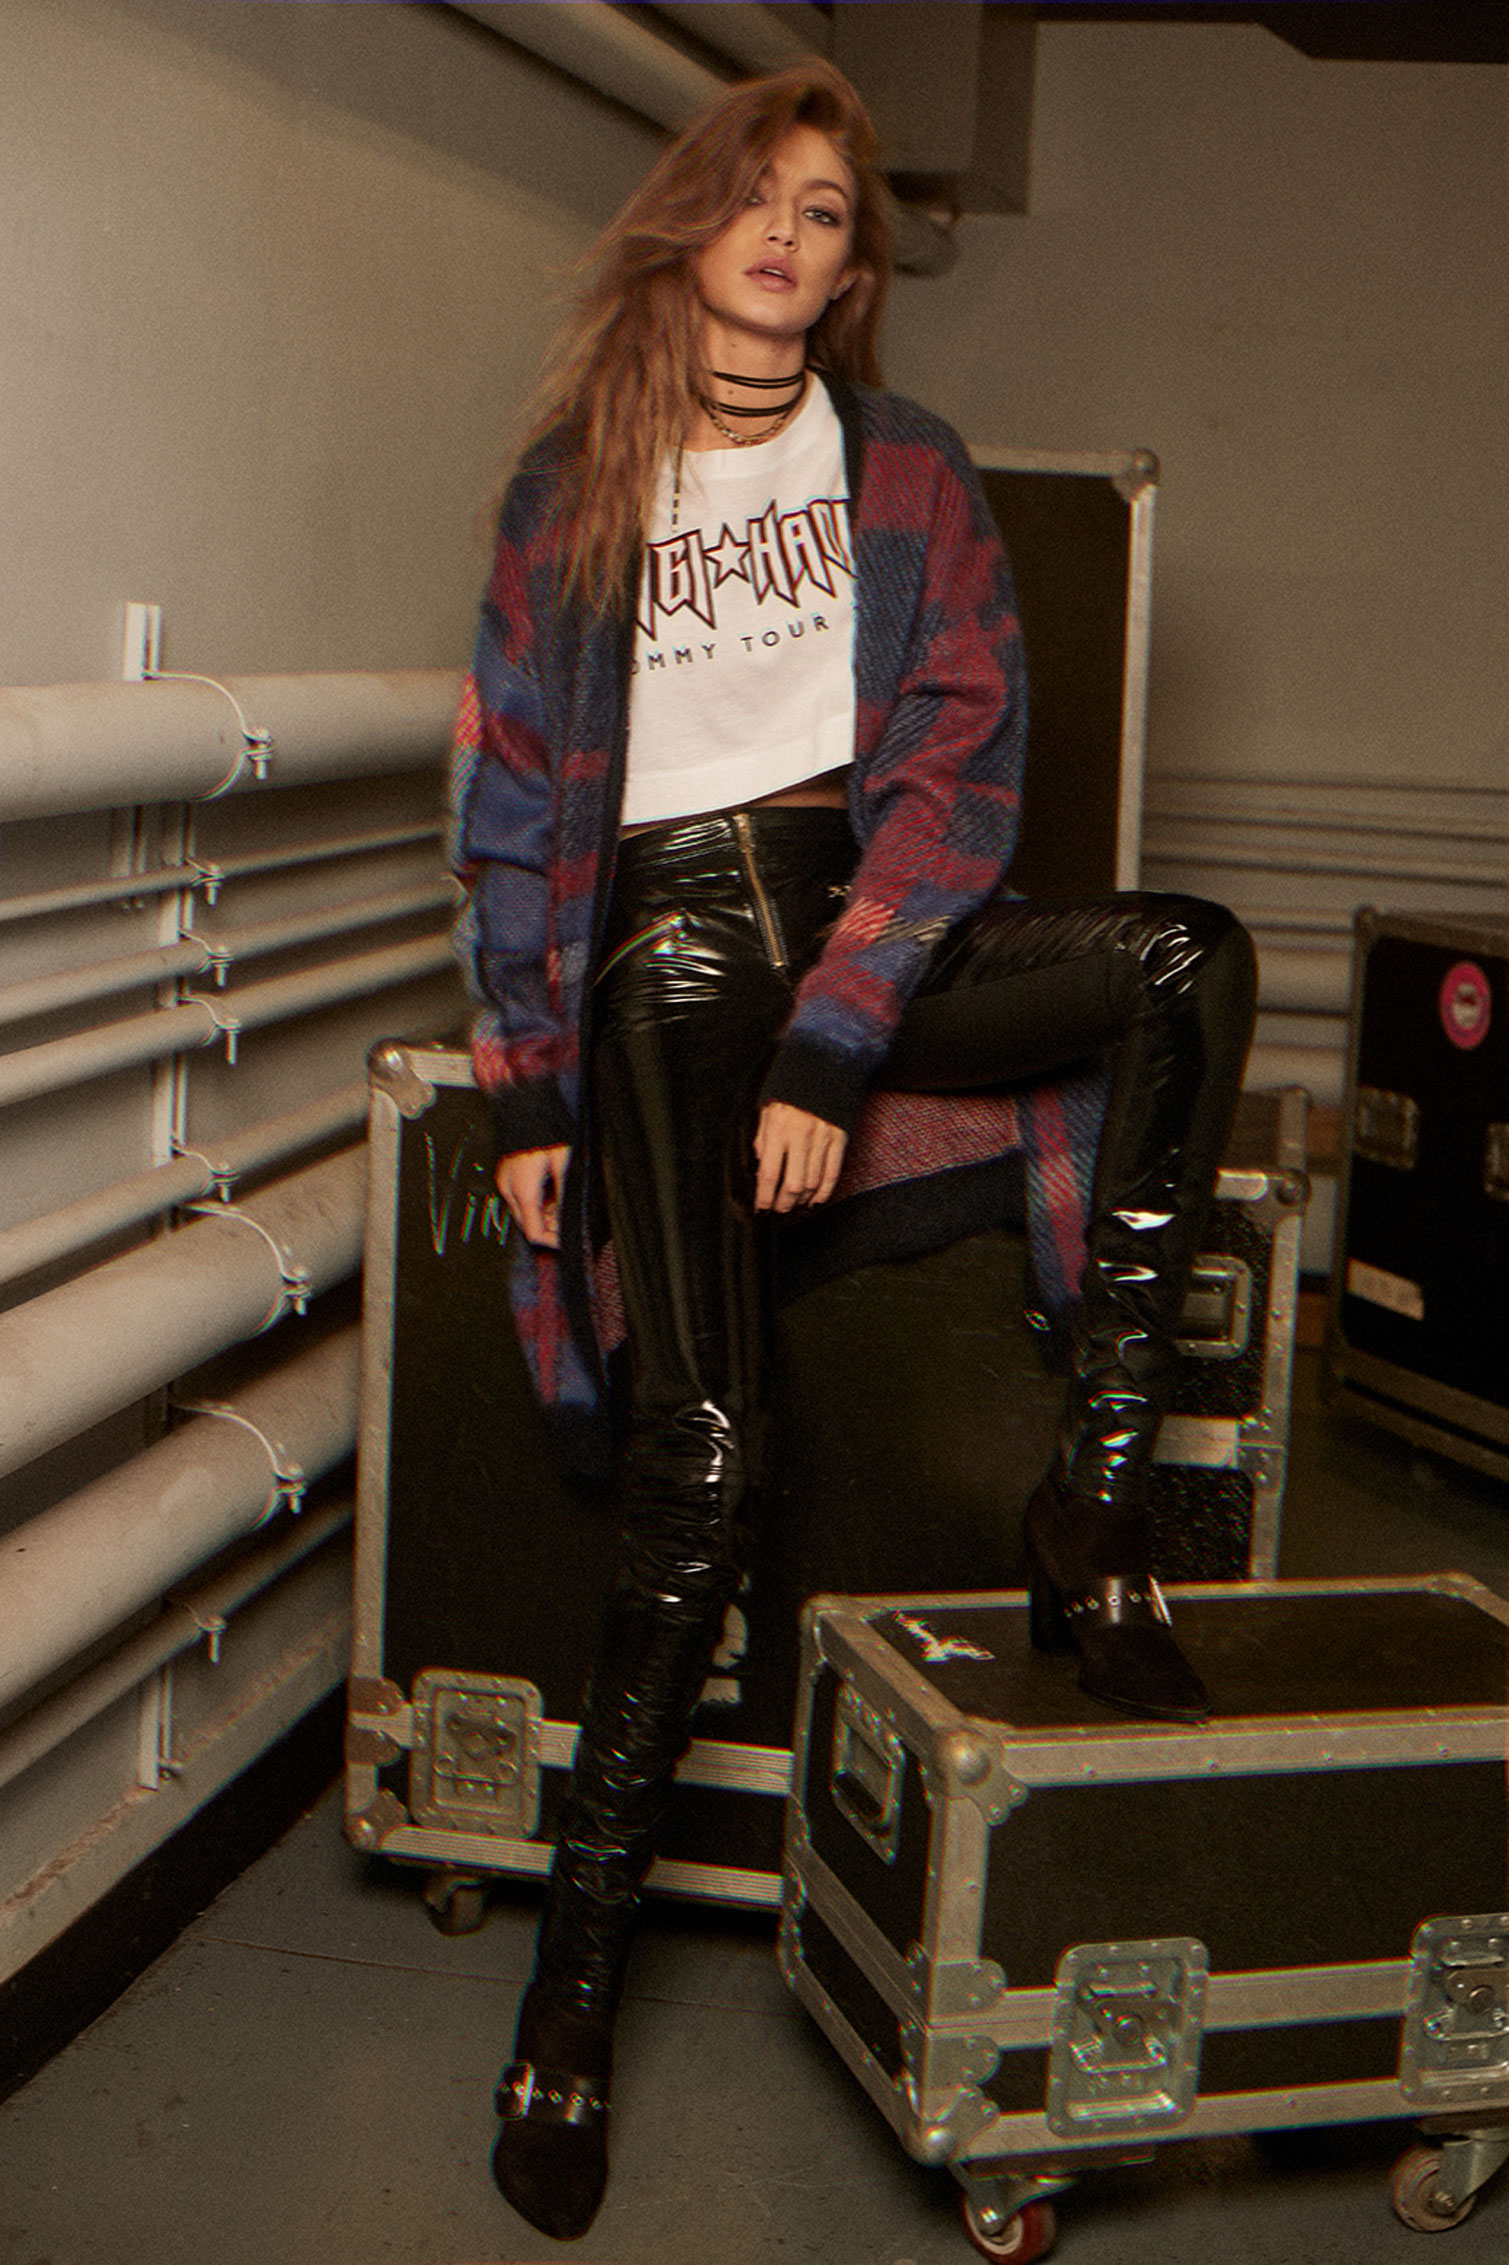 f509b6565 Exclusive behind-the-scenes images of Gigi Hadid in the Tommy ...